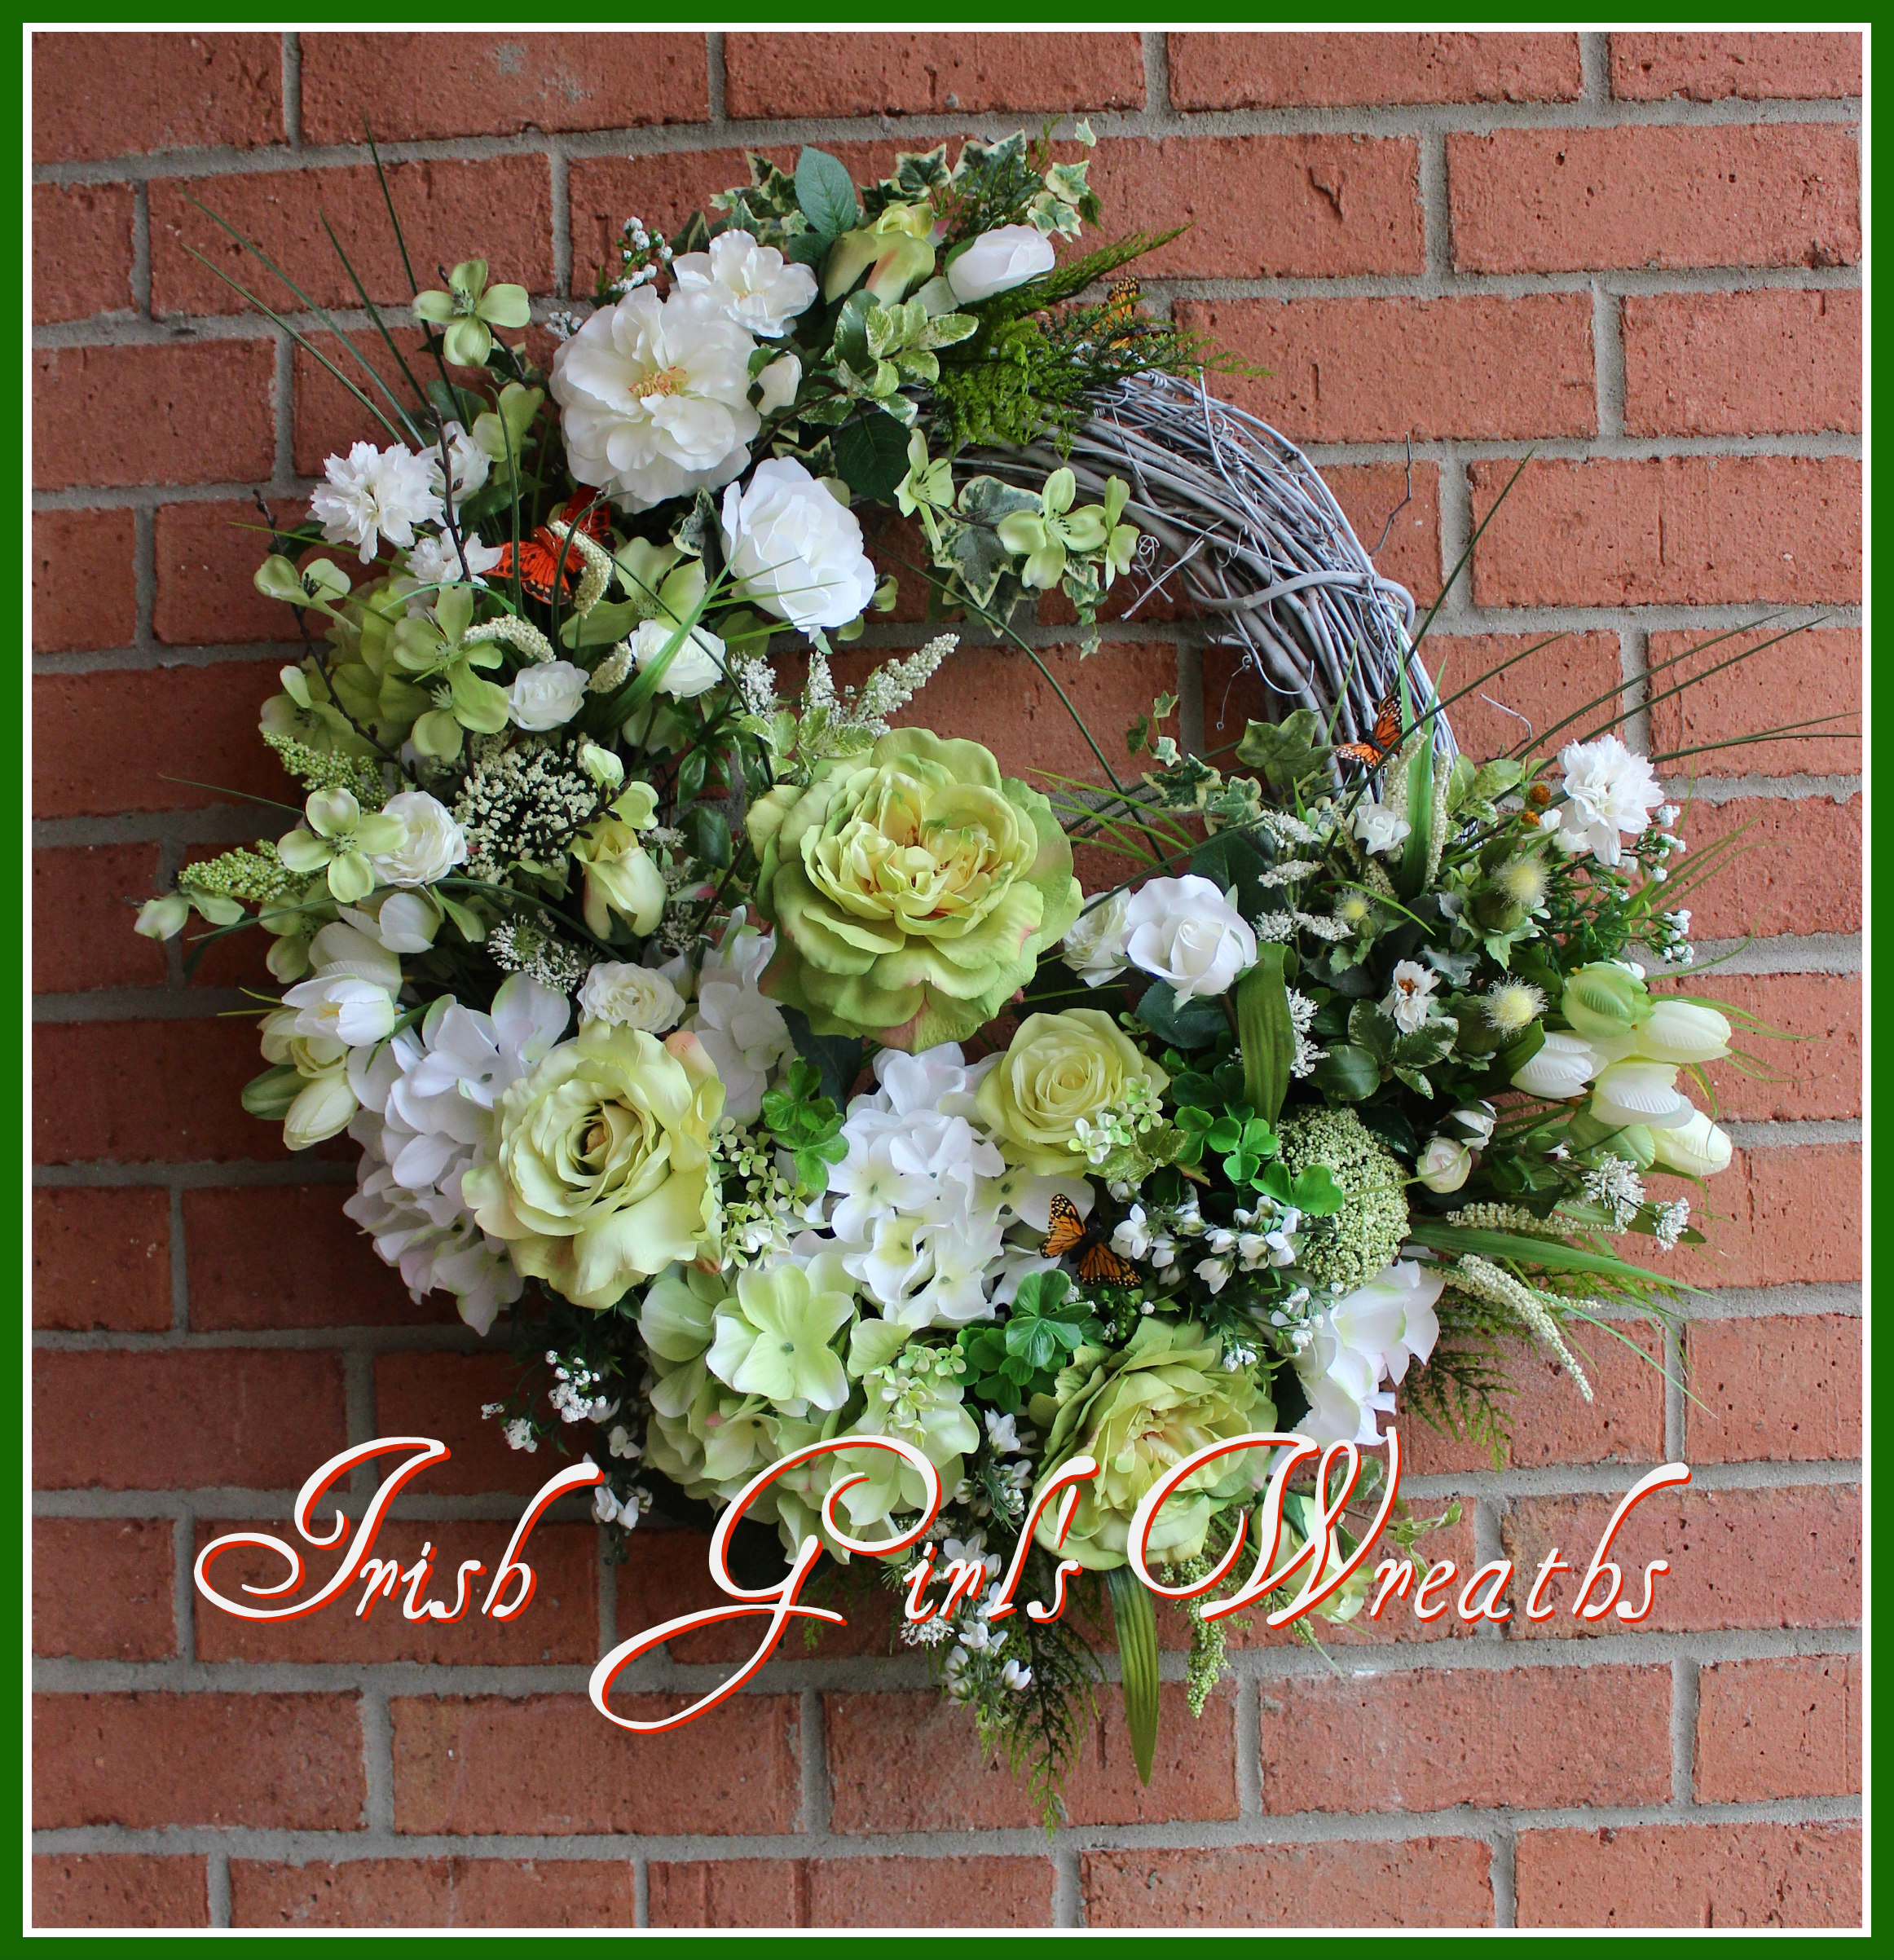 Saint Patrick's Garden Wreath- 2016